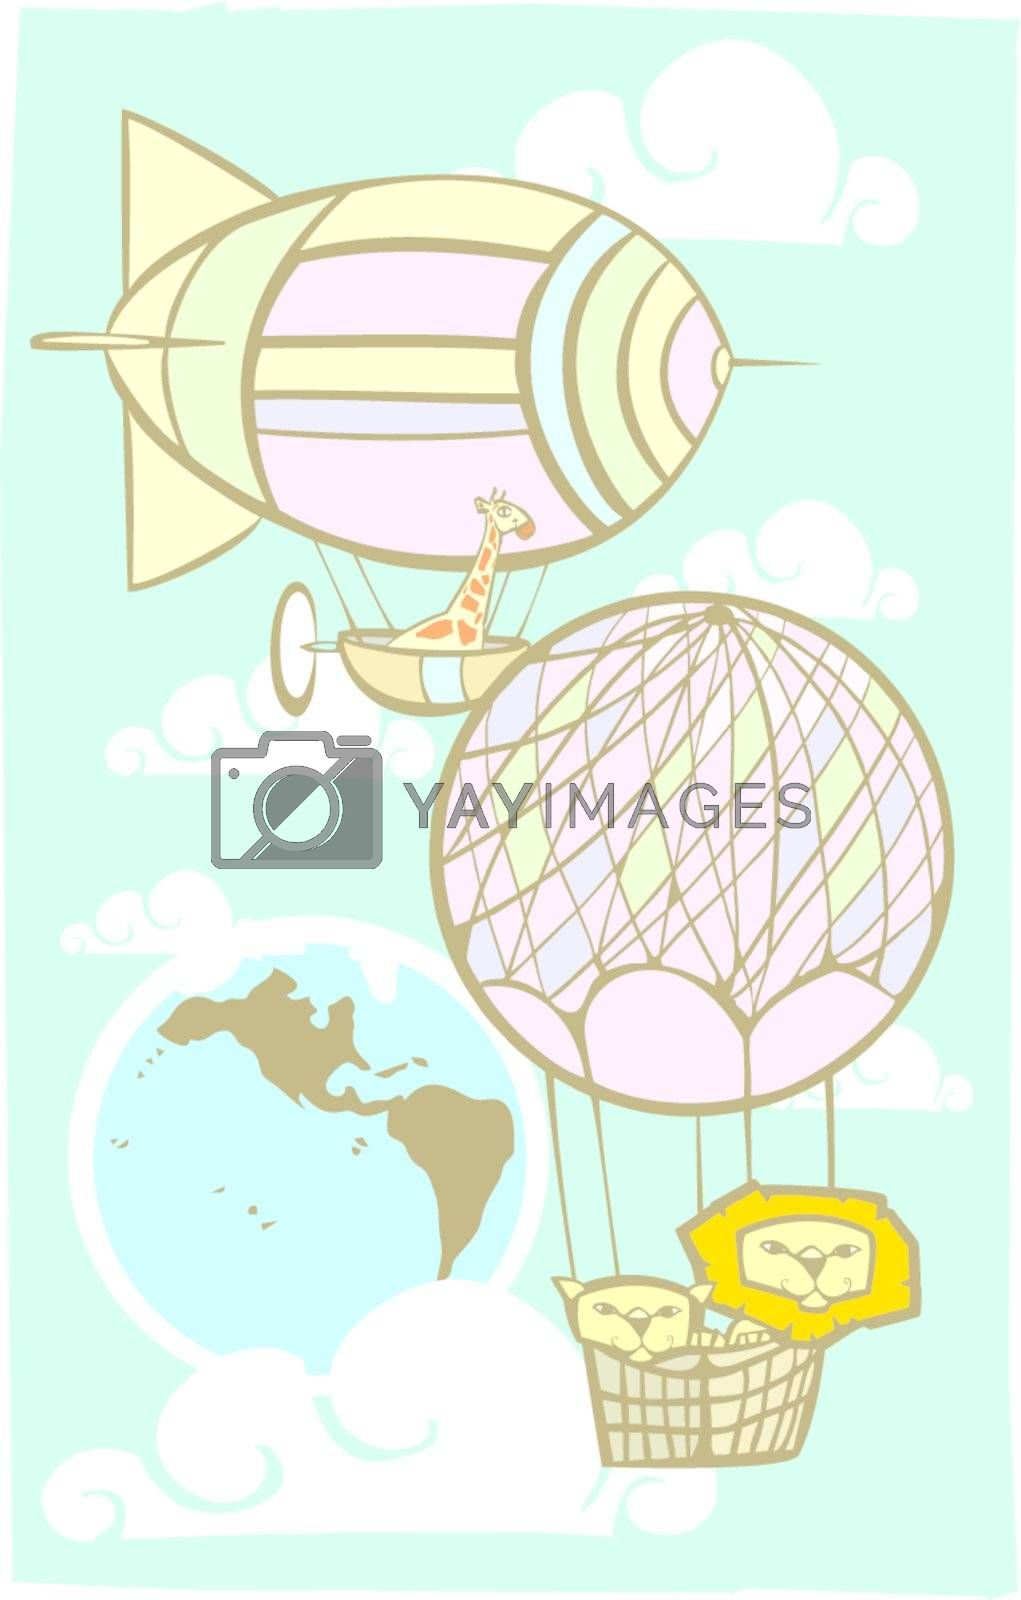 Children's playful image of a Giraffe flying a blimp and two lions in a balloon over the Earth.